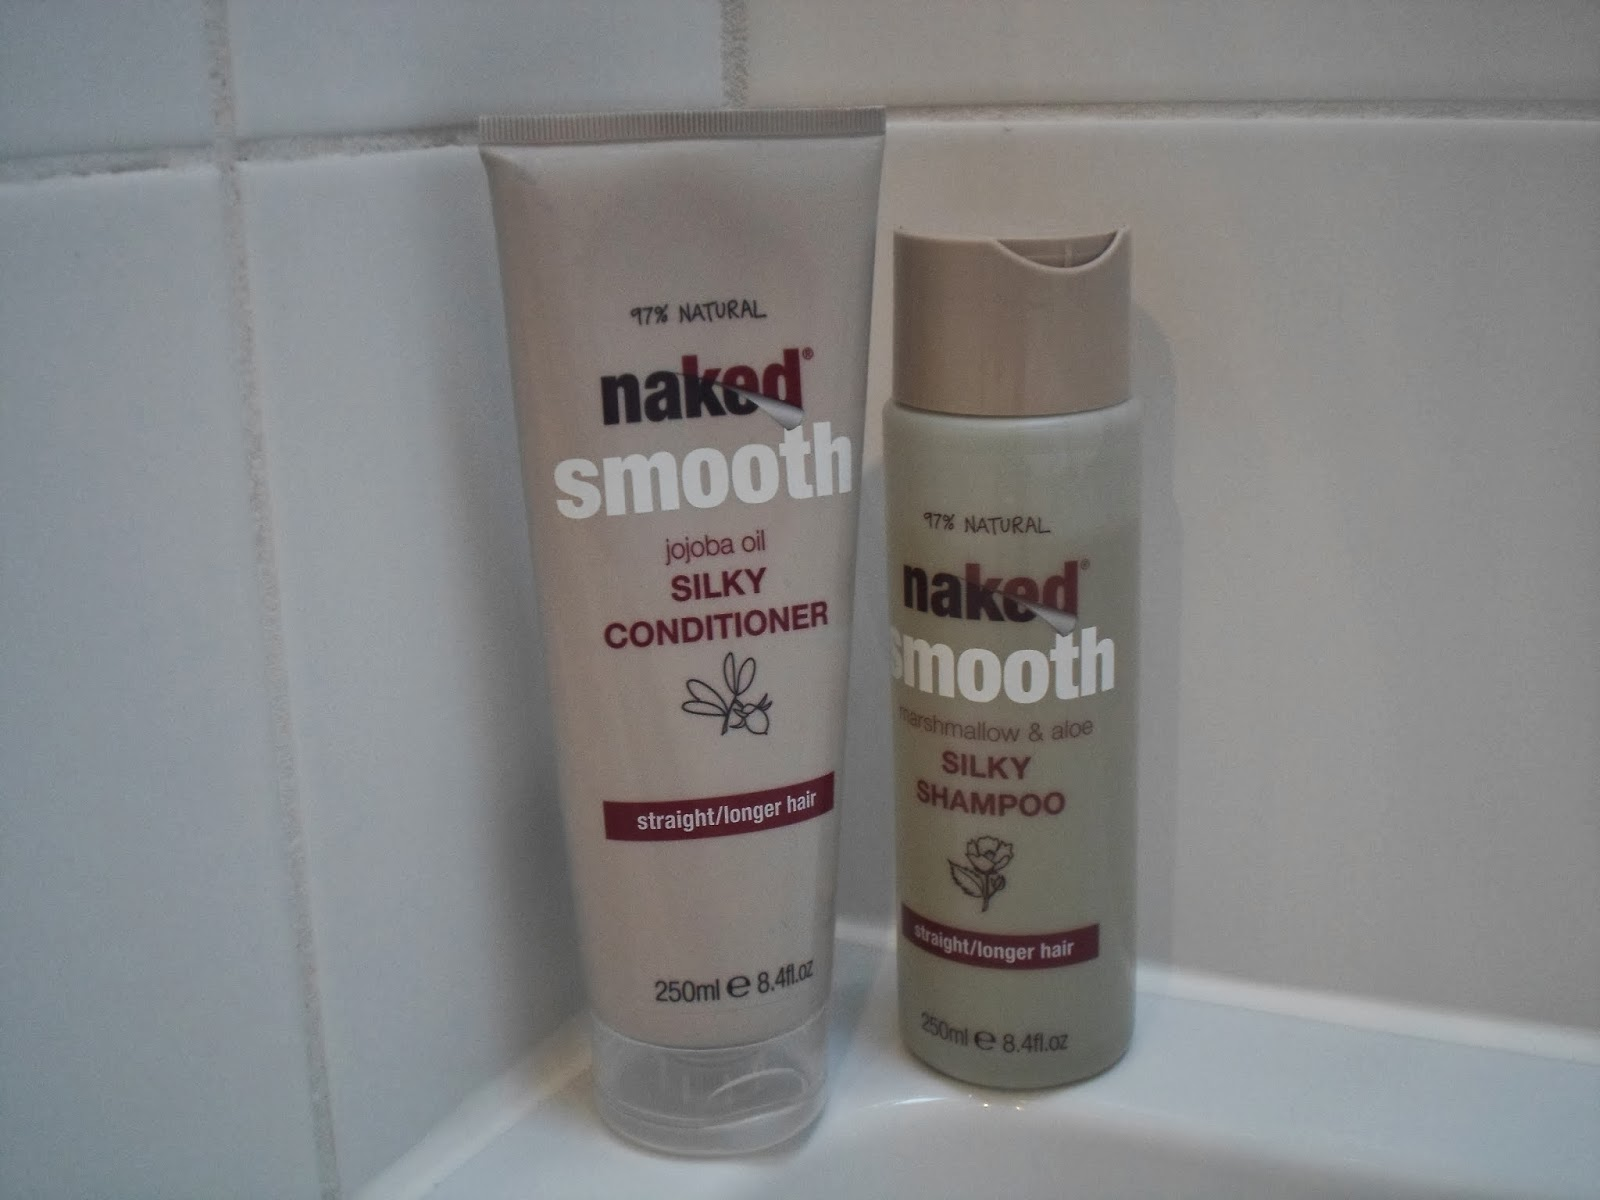 naked naturals shampoo reviews